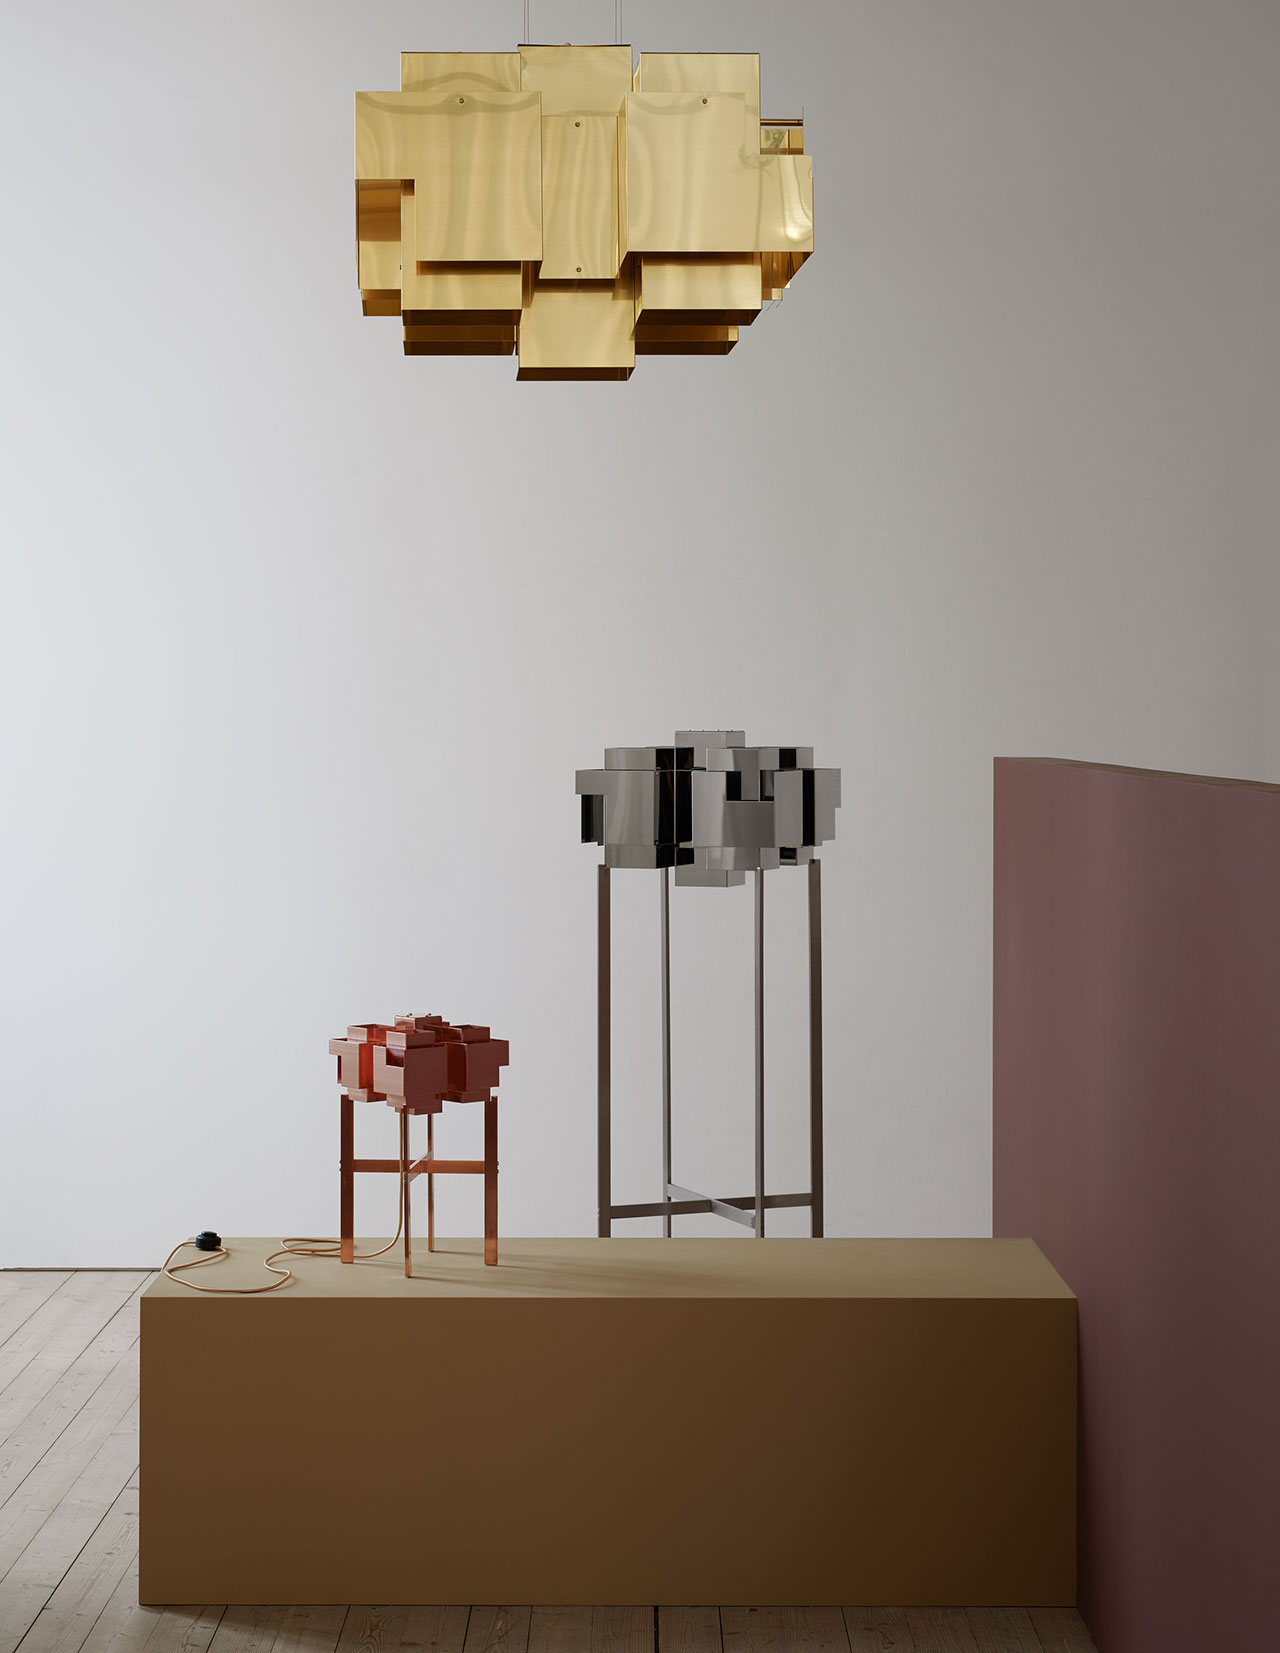 Lamp series Skyline, brass ceiling lamp, chrome floor lamp, copper table lamp, all by Folkform for Örsjö. Photo by Kristofer Johnsson.